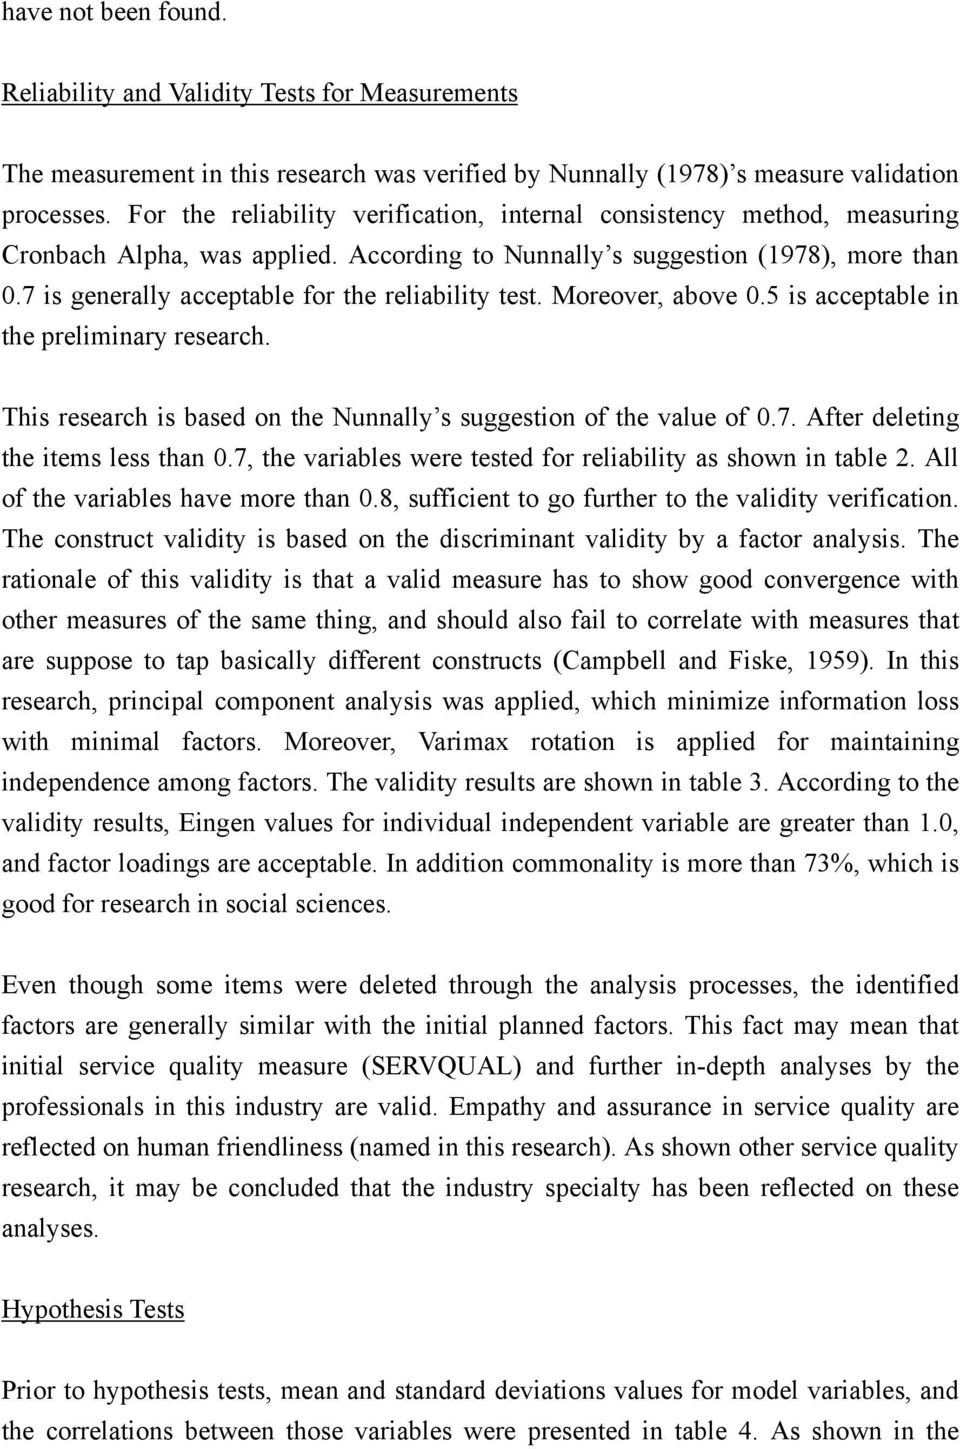 7 is generally acceptable for the reliability test. Moreover, above 0.5 is acceptable in the preliminary research. This research is based on the Nunnally s suggestion of the value of 0.7. After deleting the items less than 0.